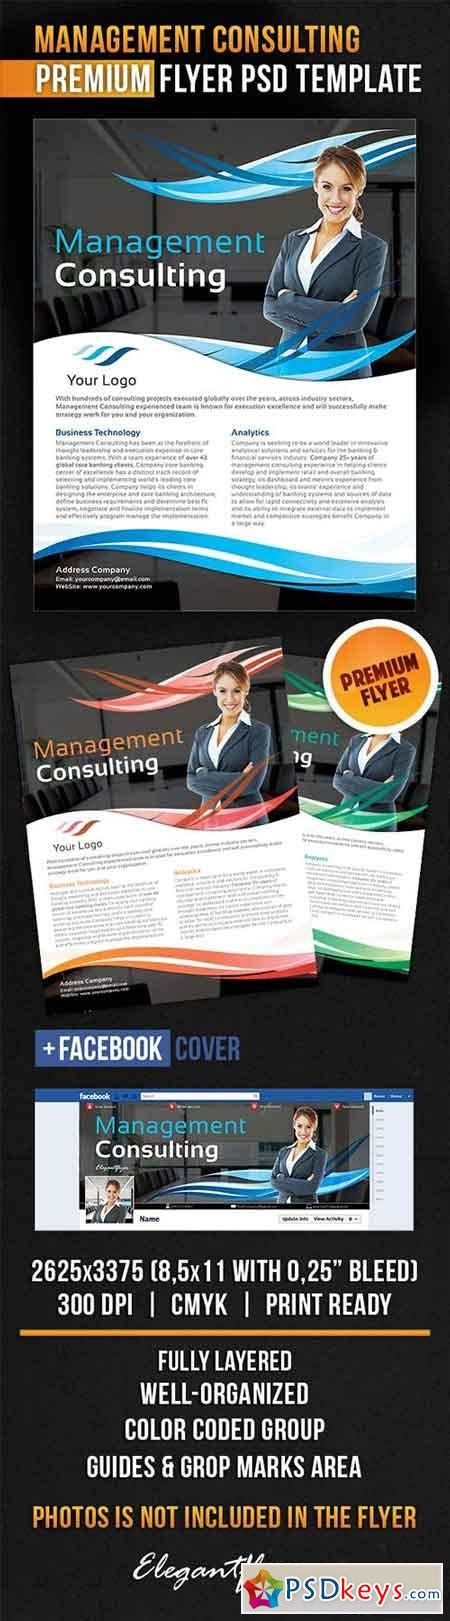 management consulting flyer psd template facebook cover